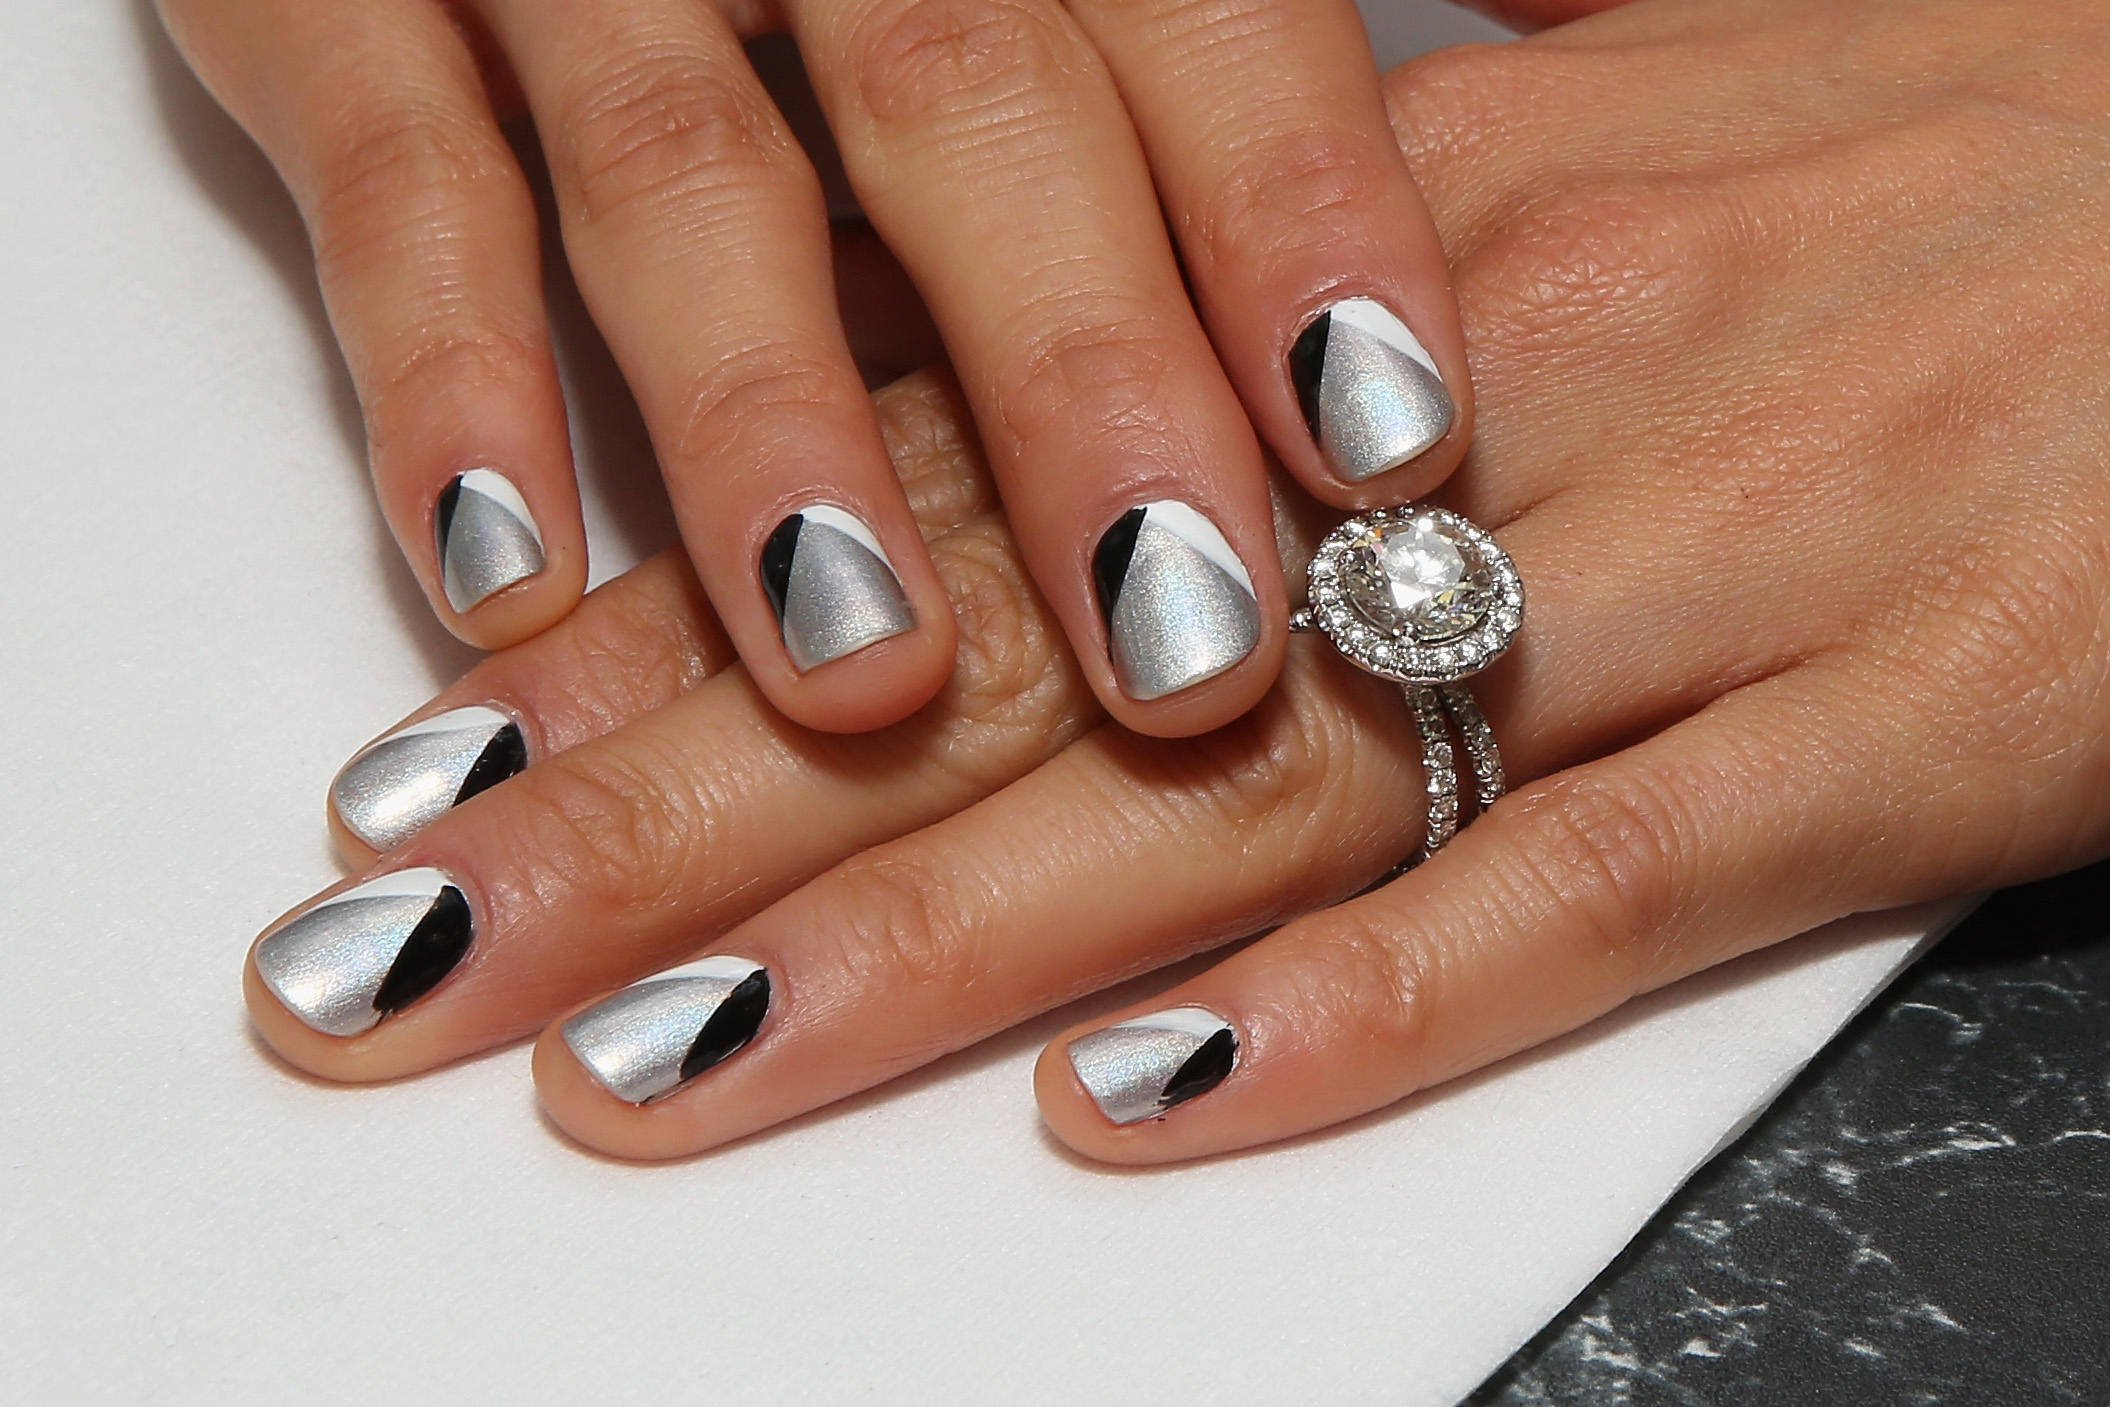 Coffin Nails, Stiletto Nails, & The Other 8 Nail Shapes You Should ...